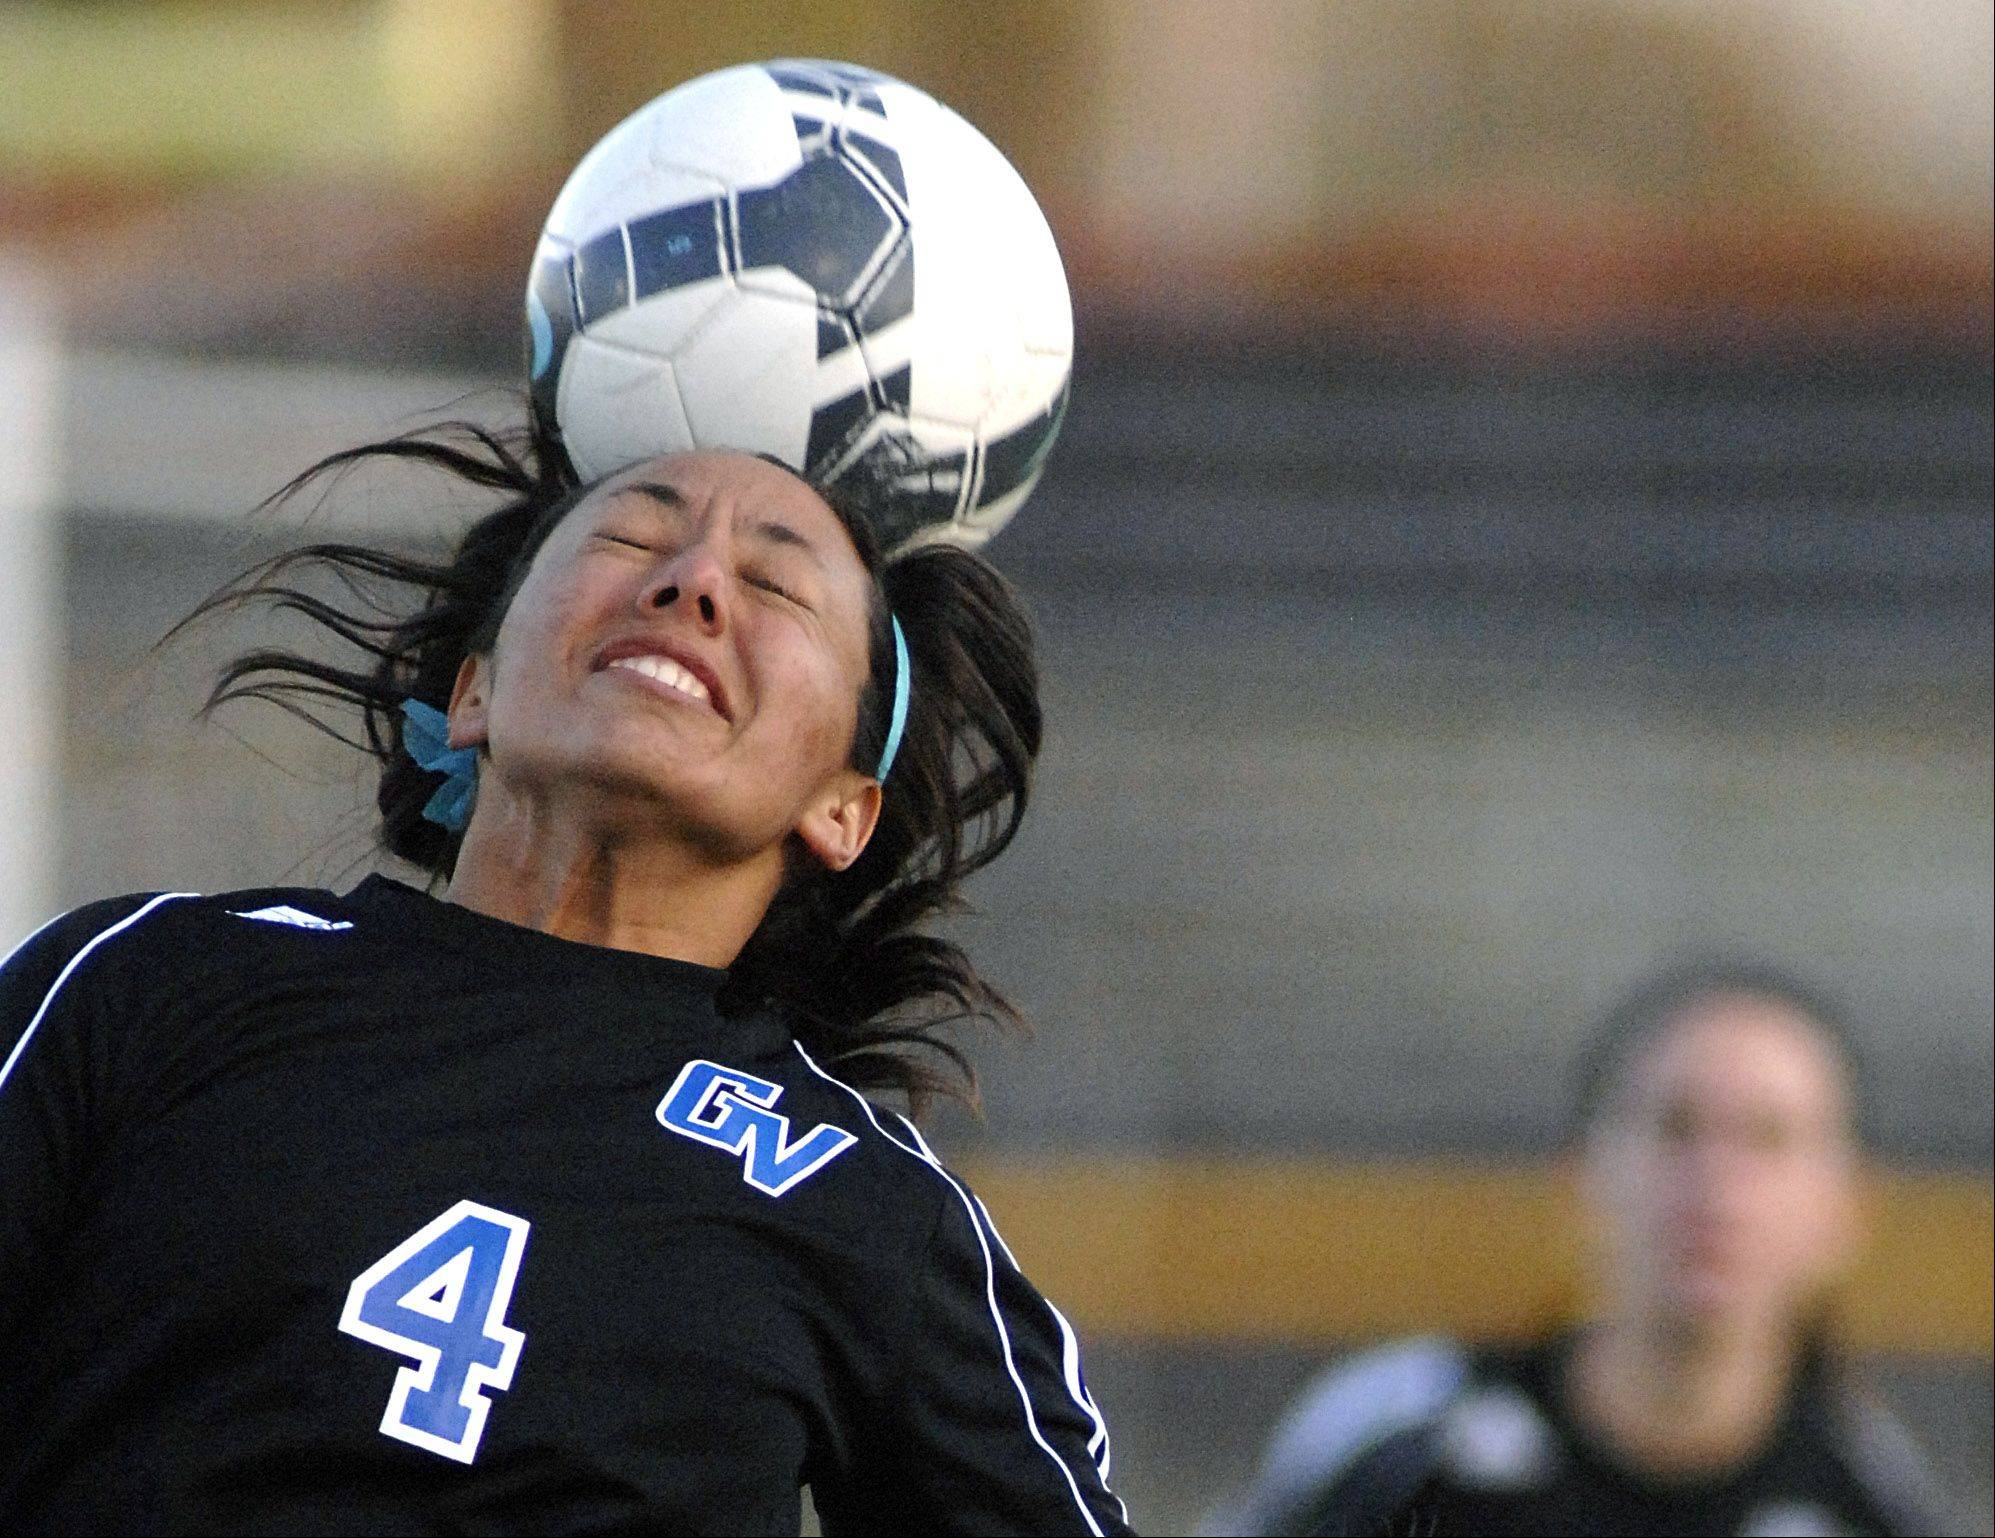 Geneva's Kristin Rodriguez heads the ball in the first half of Wedneday's game.